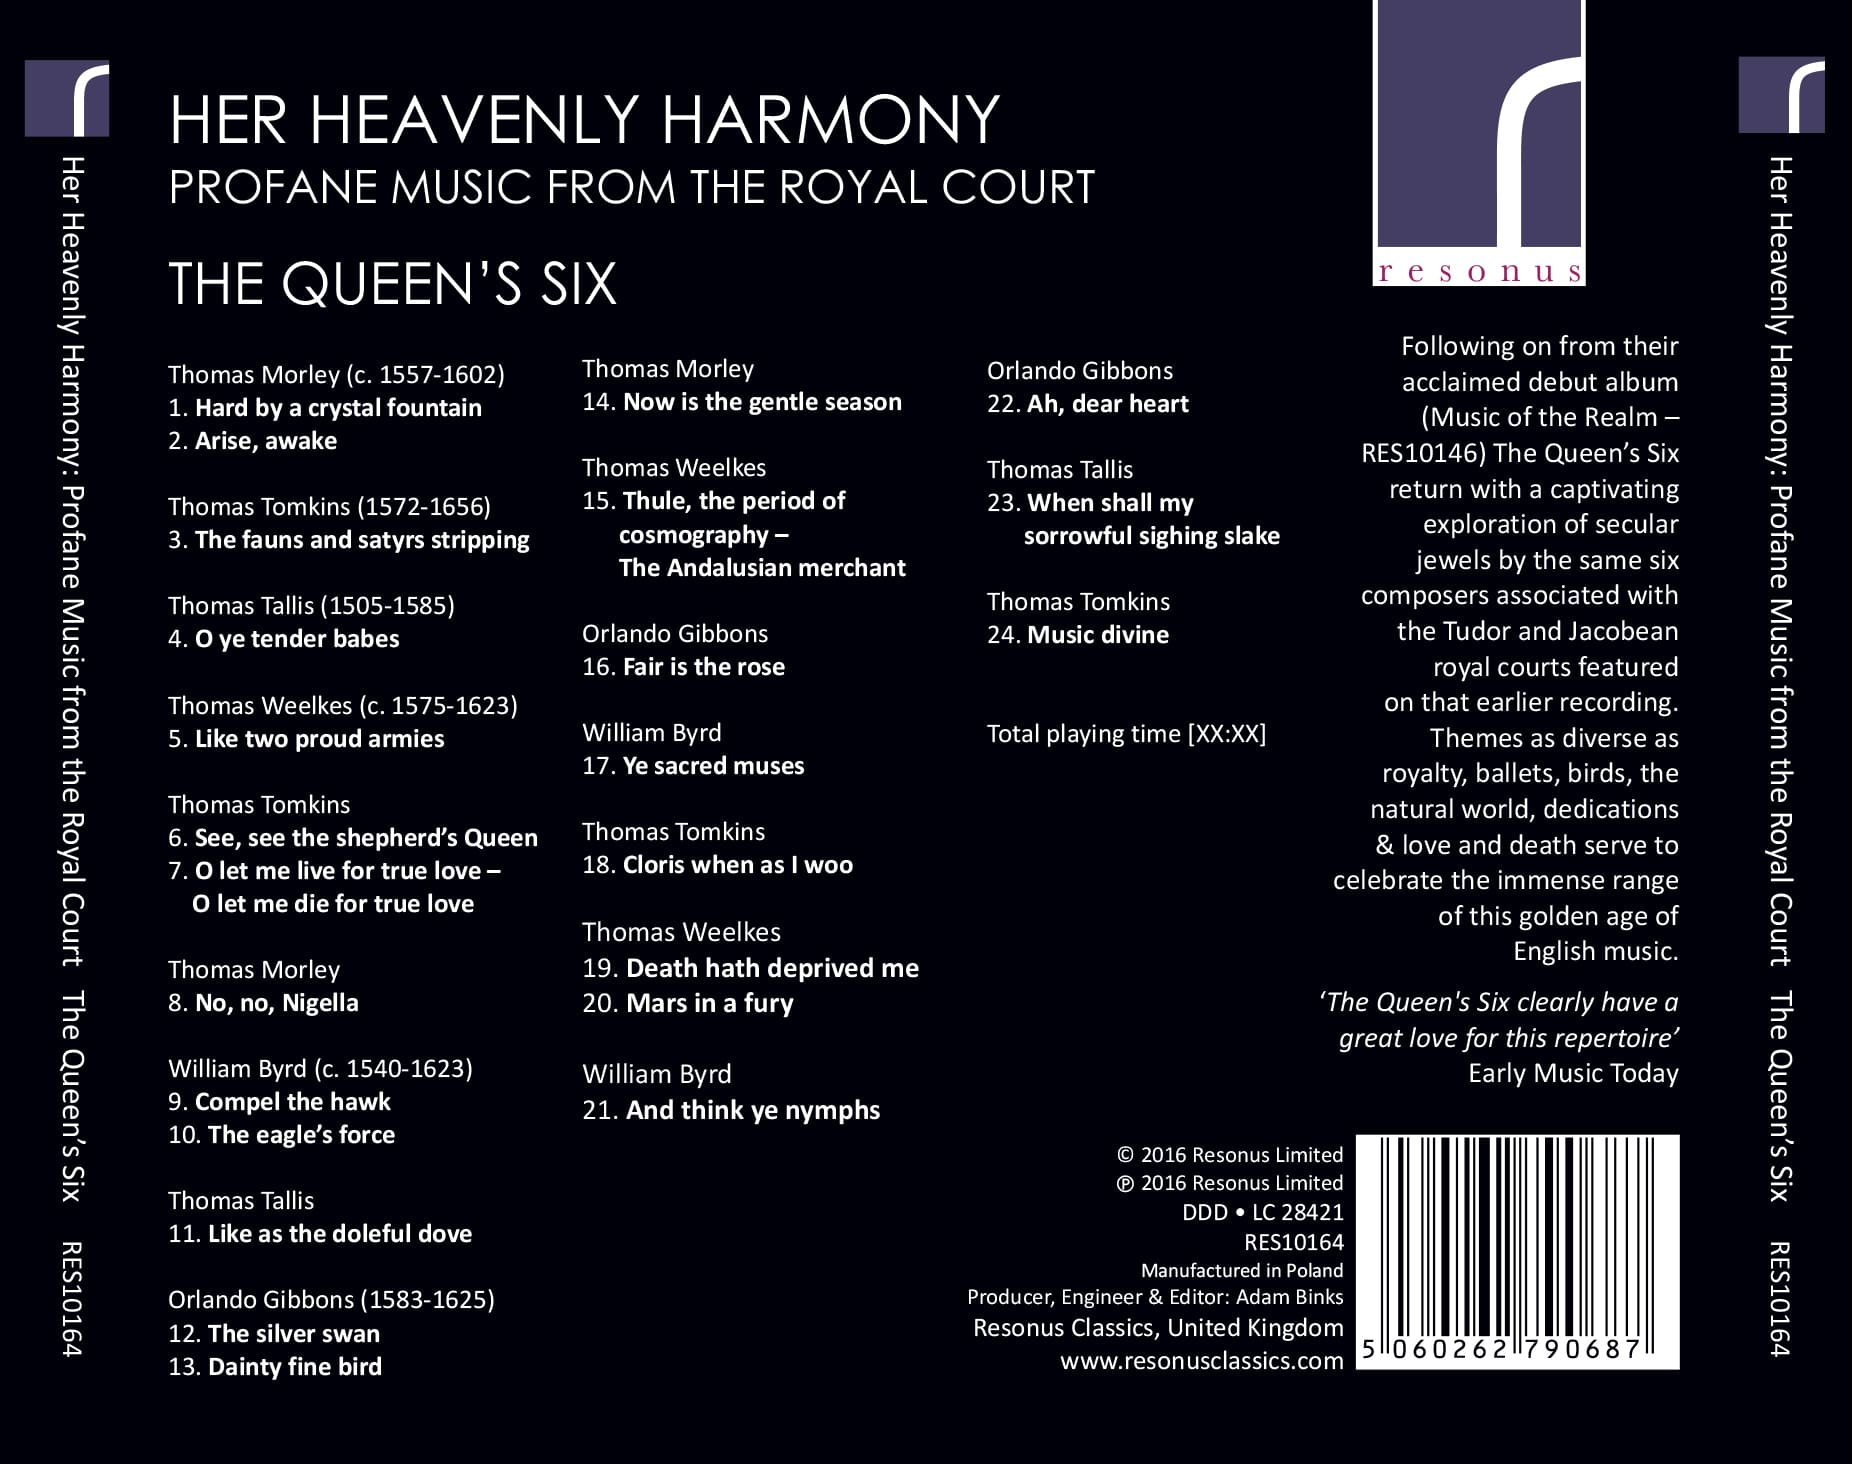 Her Heavenly Harmony album back